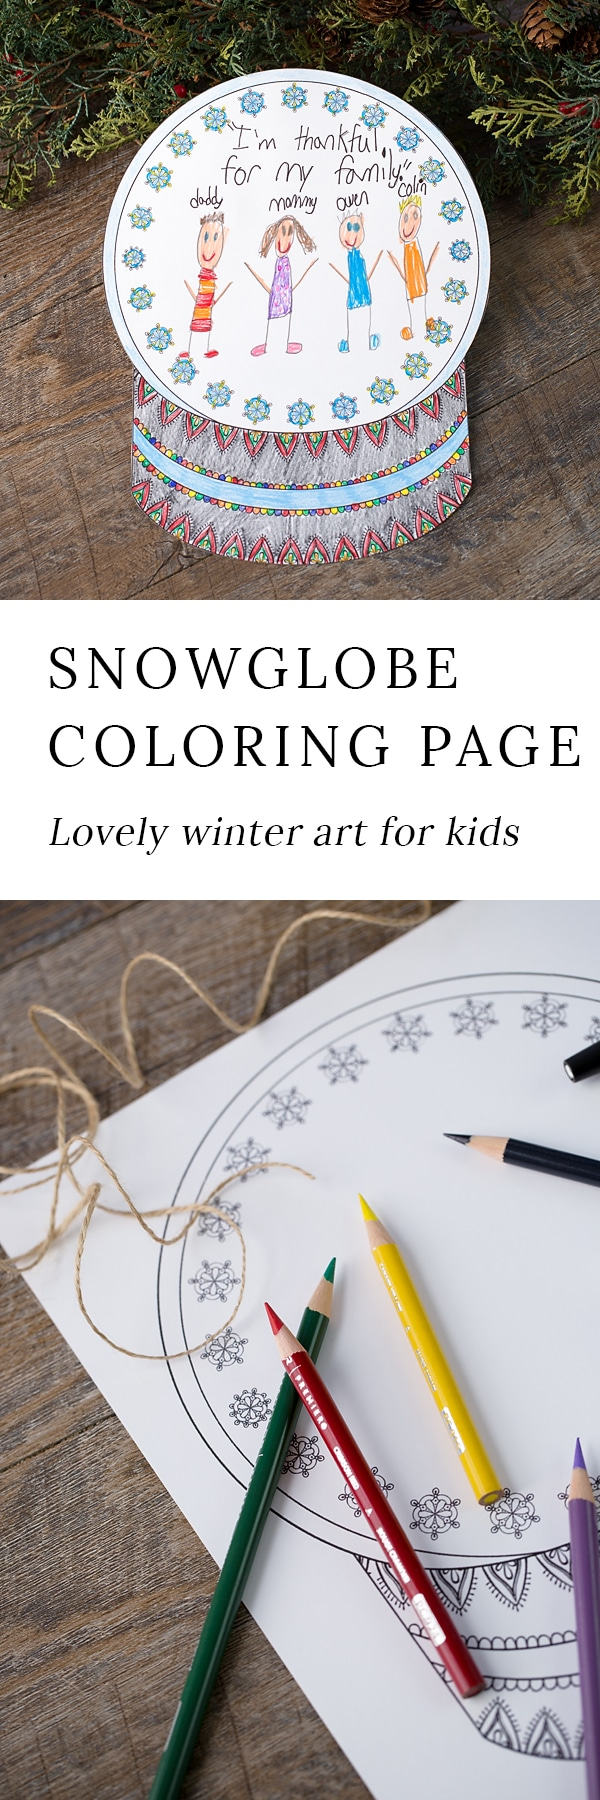 Winter is the perfect season for snowglobe crafts! Whether kids are learning about snow and snowflakes or simply enjoying a winter craft at home, this open-ended snowglobe coloring page is a fun way to enjoy winter.